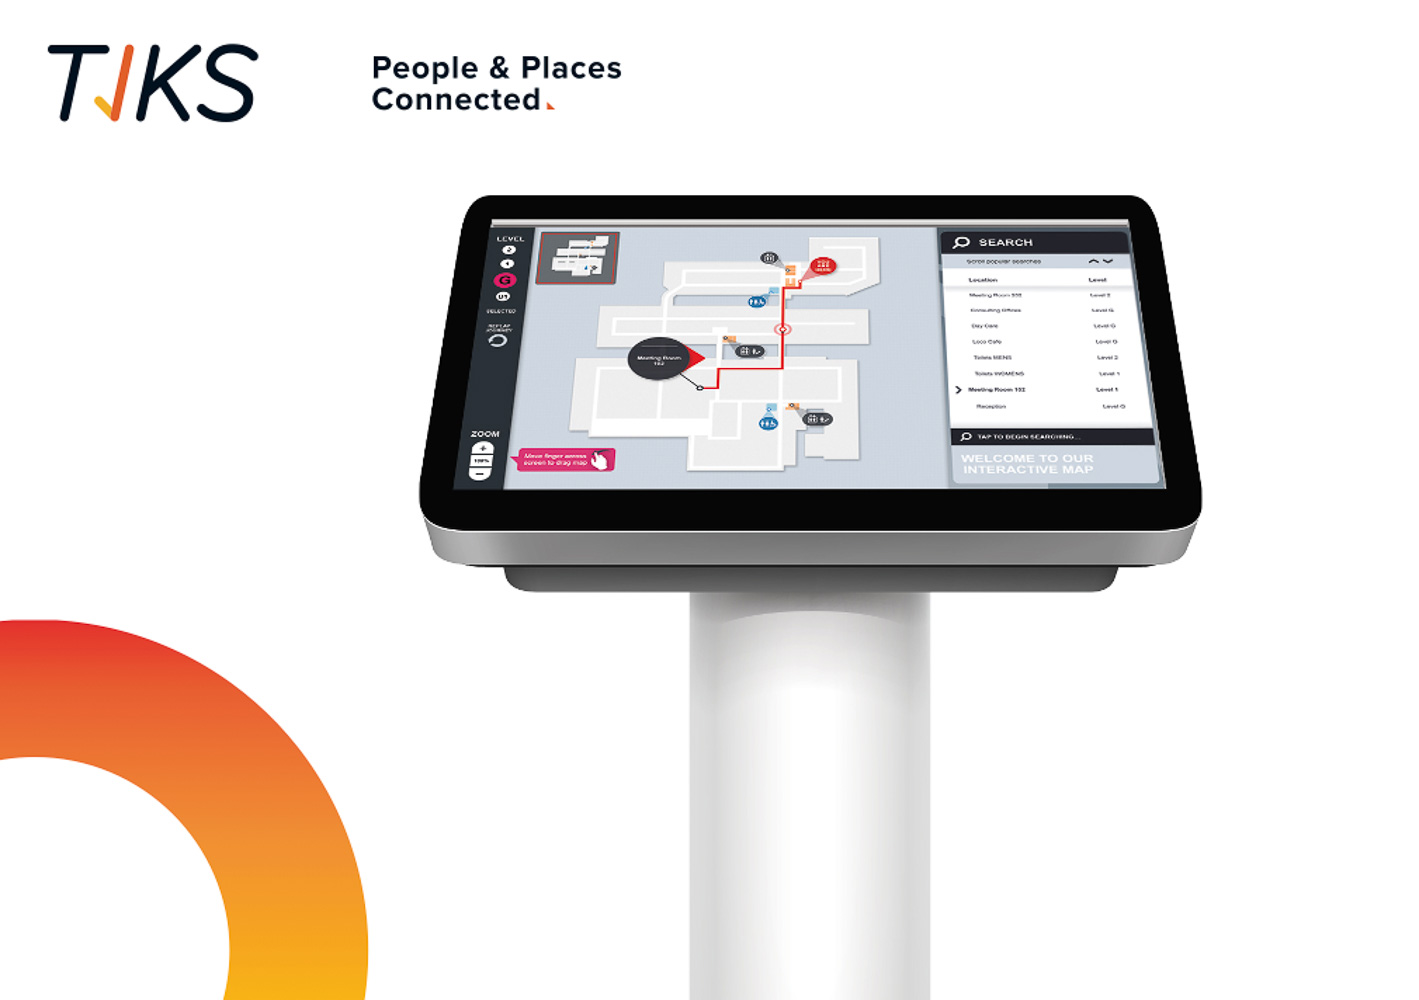 TIKS WayFinder: Let your worksite be easy to maneuver. TIKS WayFinder searches, navigates and provides important notices to your guests and staff. Improve speed, ease of movement and control who moves where in these times using our dedicated software.